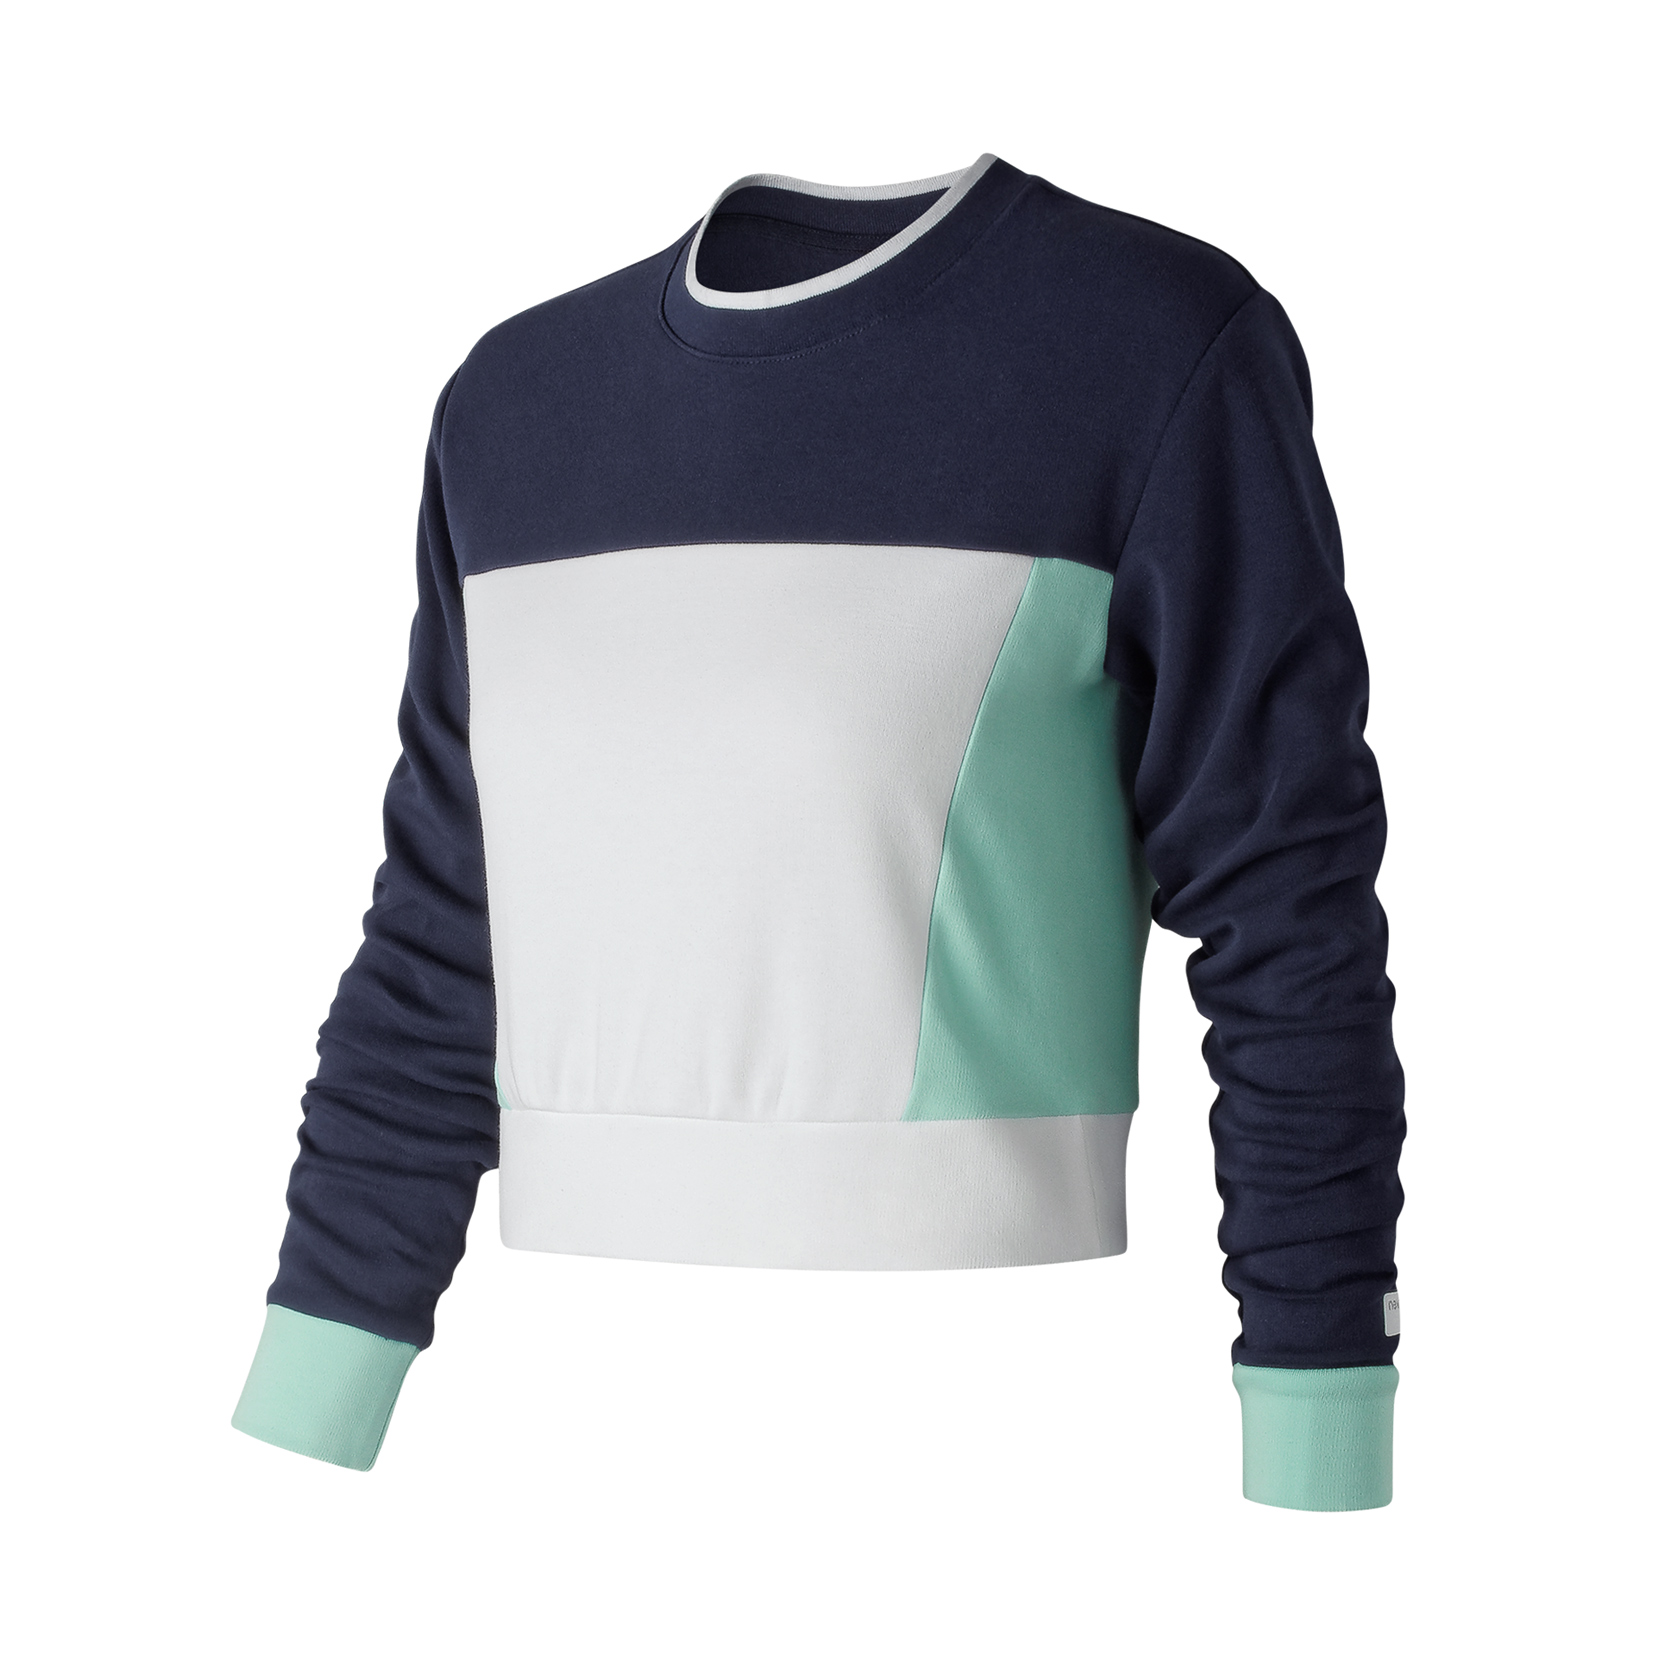 Світшот NB Athletics LS Crop для жінок WT91556PIW | New Balance